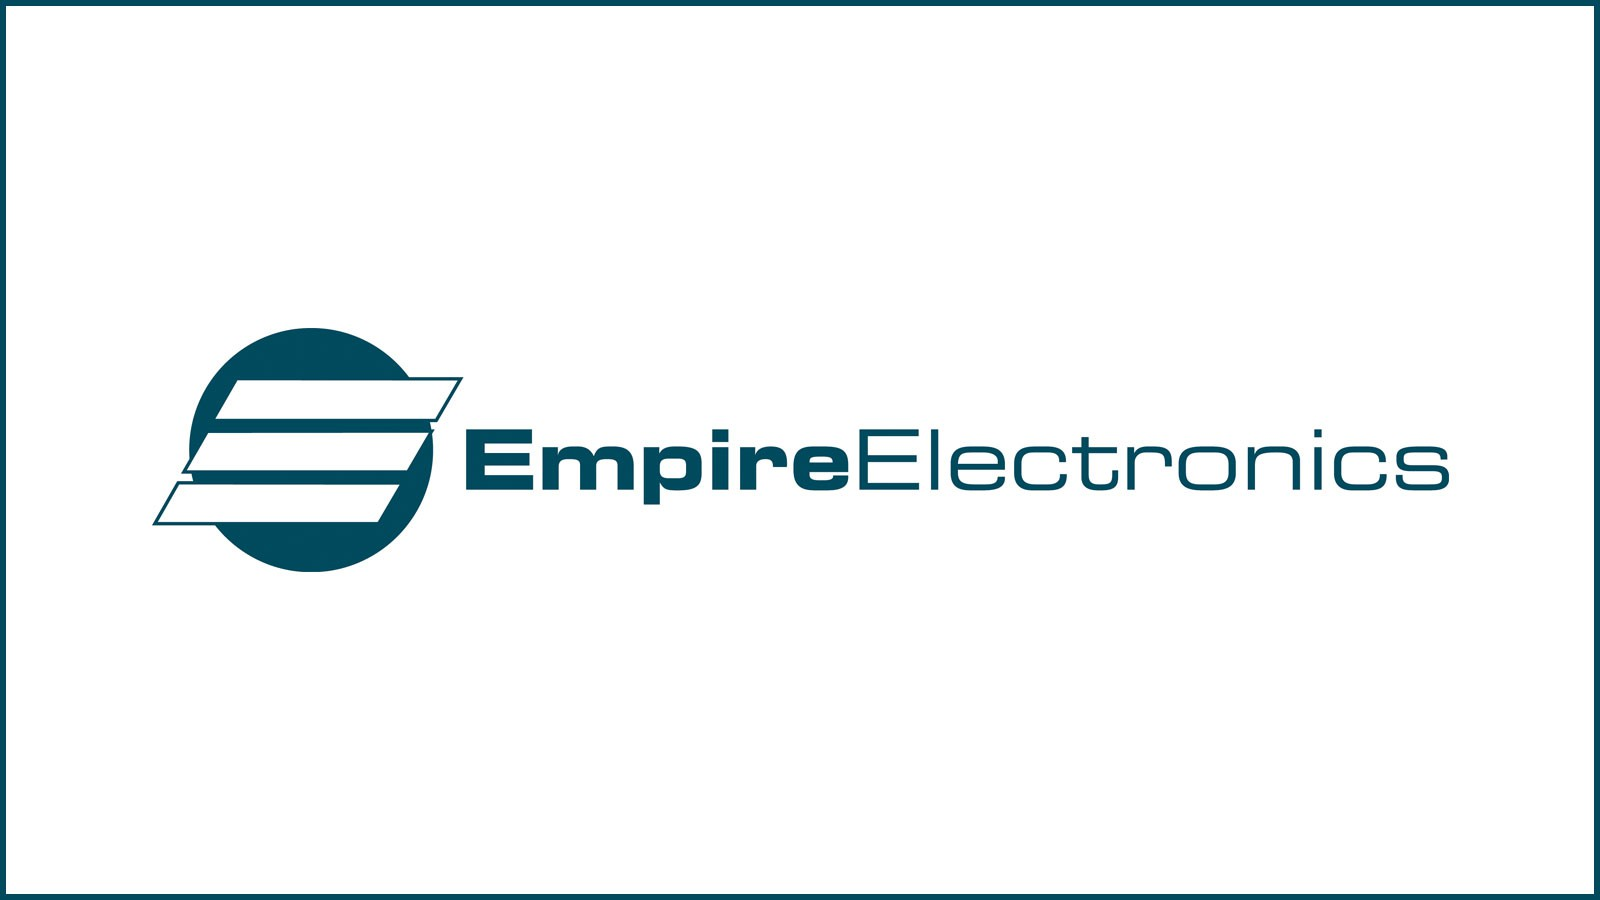 LOCATIONS – Empire Electronics